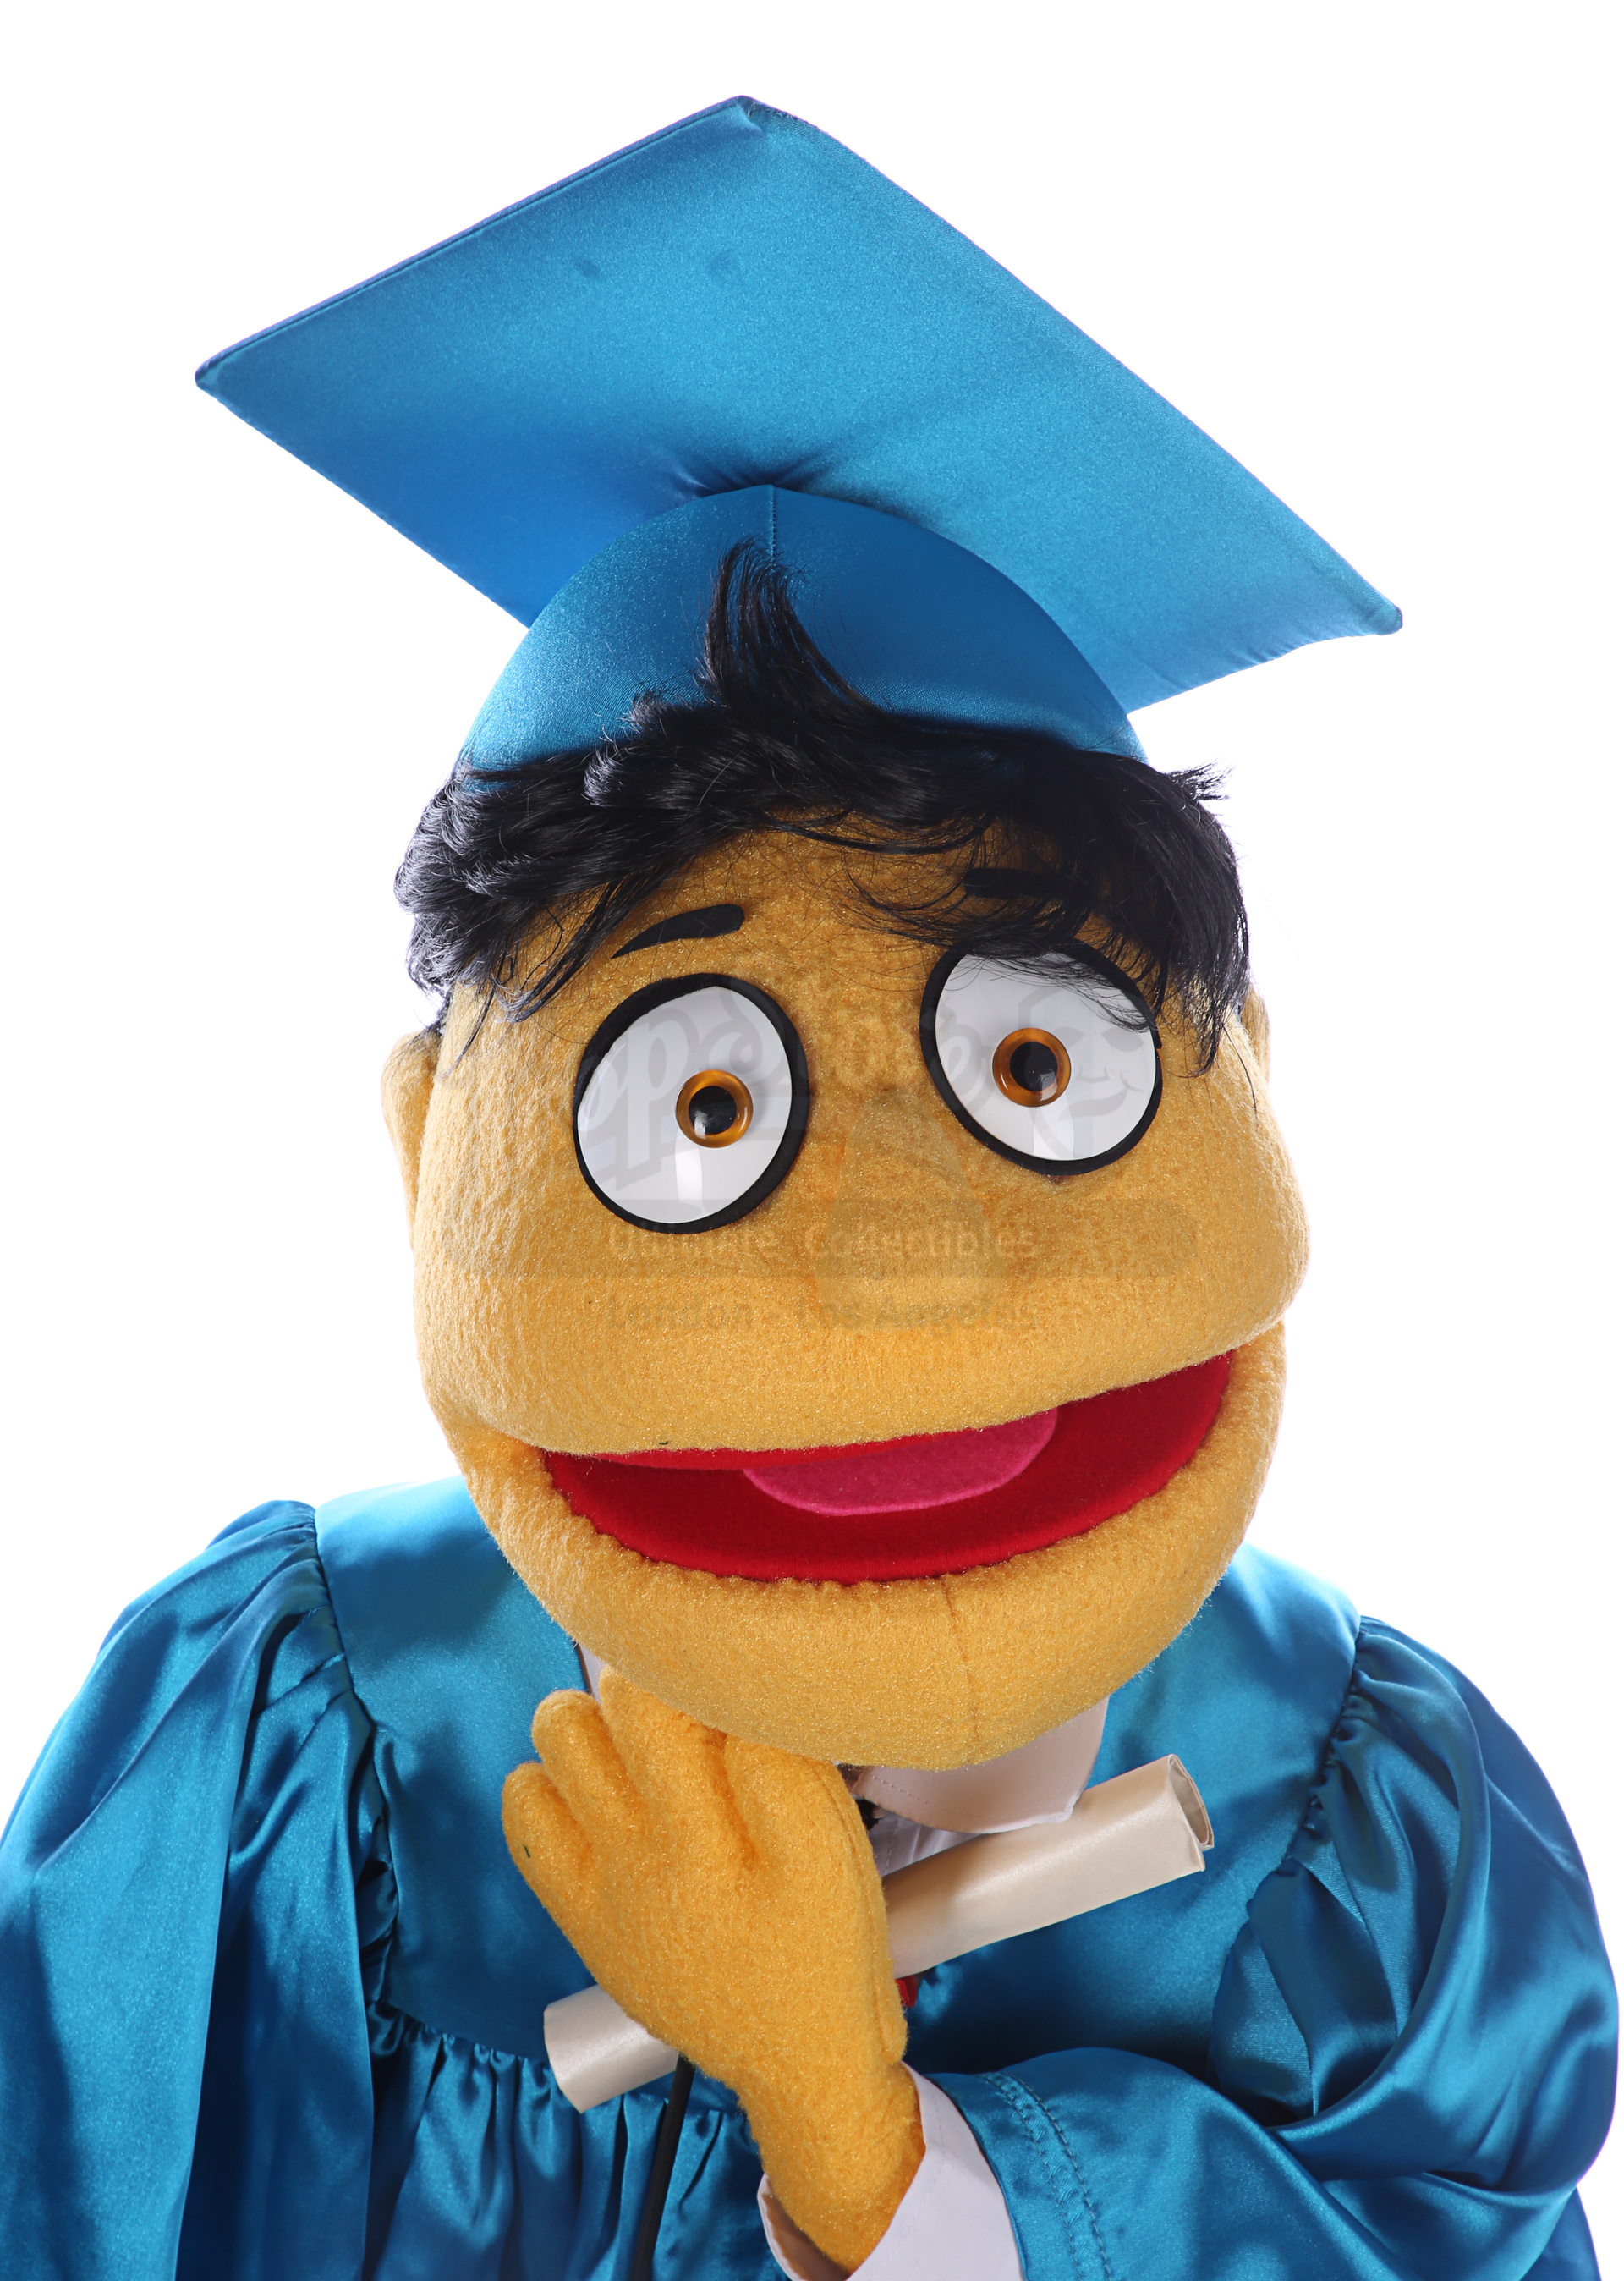 AVENUE Q (STAGE SHOW) - Kate Monster and Princeton Graduation Puppets - Image 3 of 9